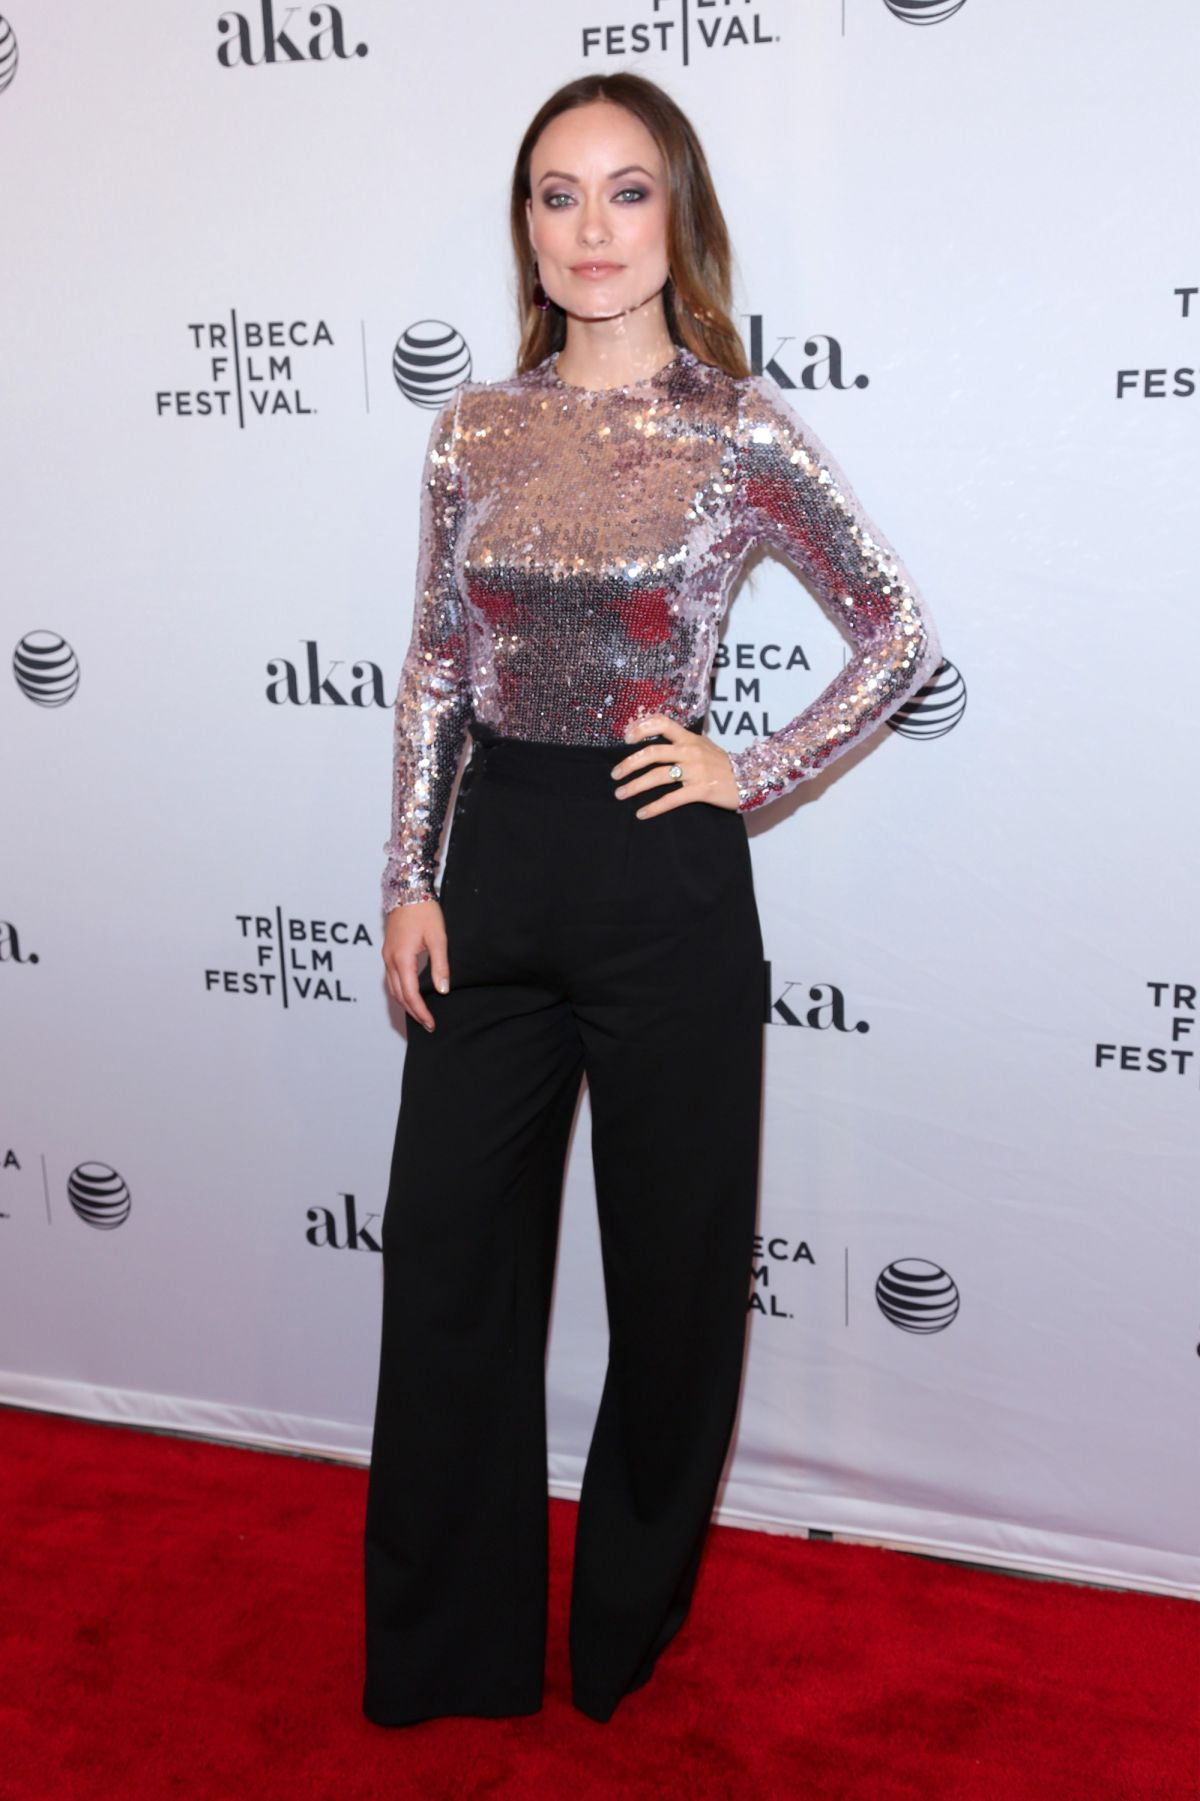 olivia-wilde-at-meadowland-premiere-at-tribeca-film-festival-in-new-york_2